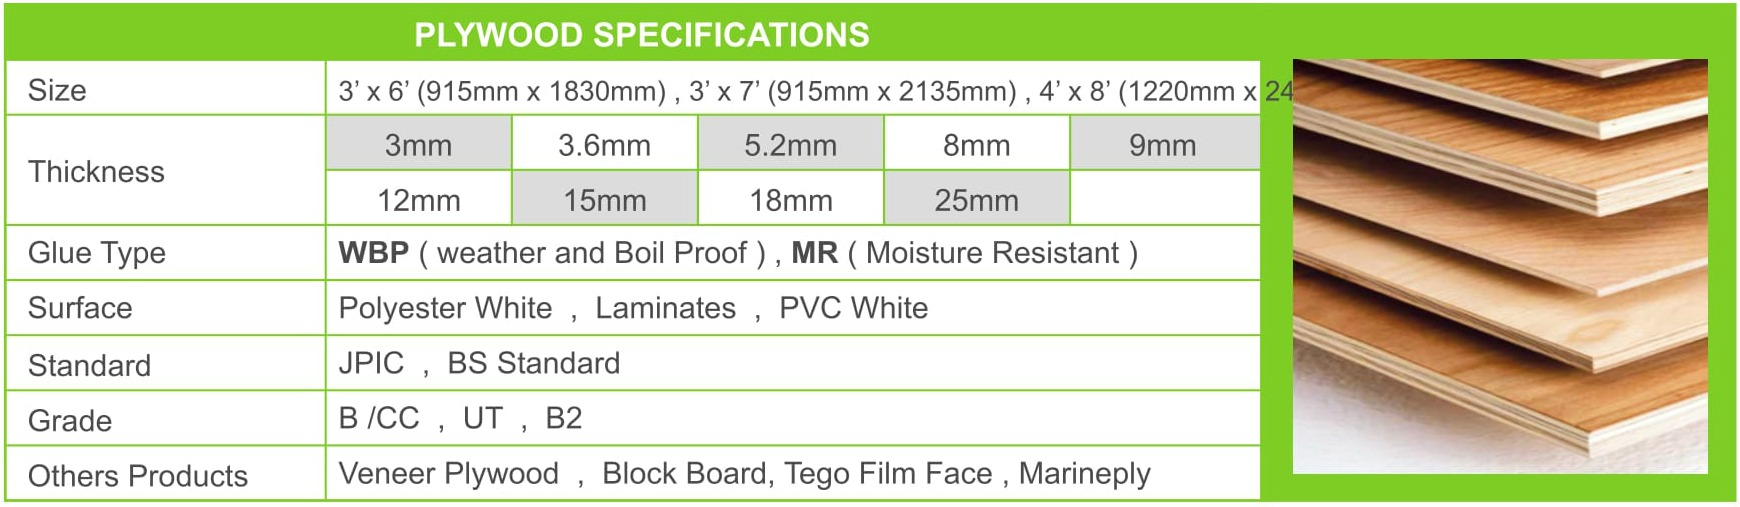 Standard Thickness Of Plywood ~ Standard plywood suppliers malaysia company board ply